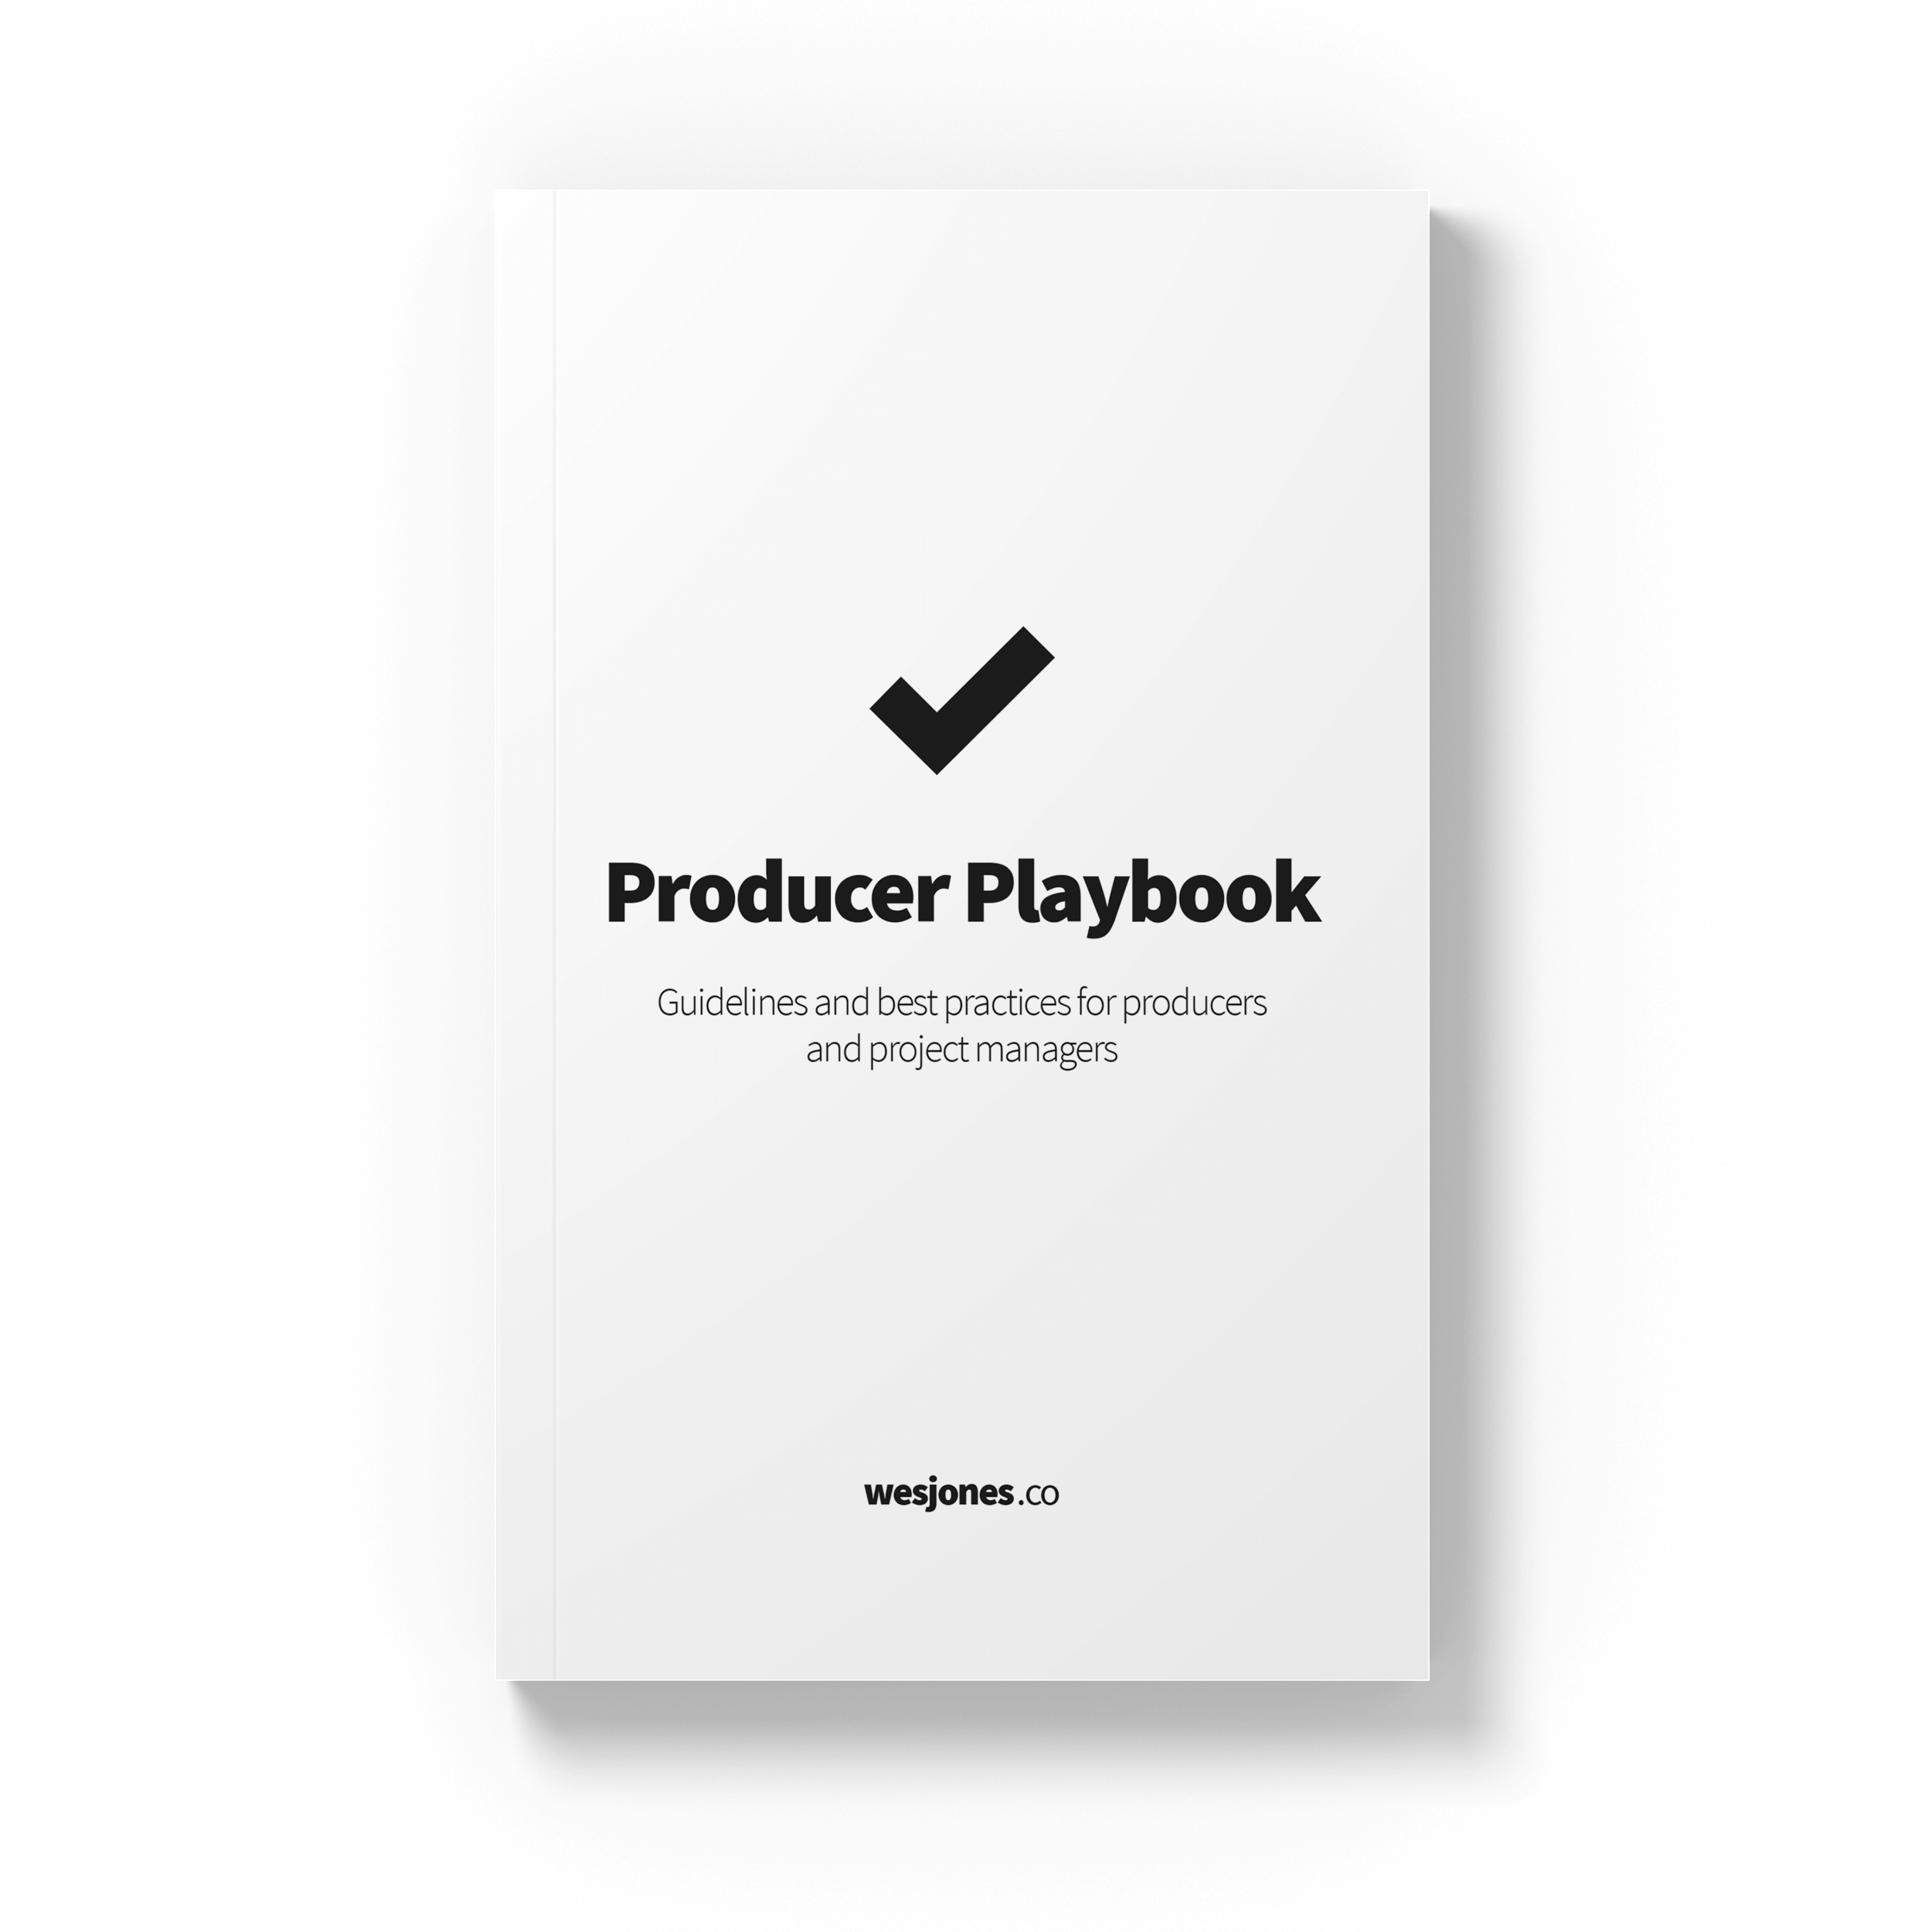 Guidelines and best practices for producers and project managers -